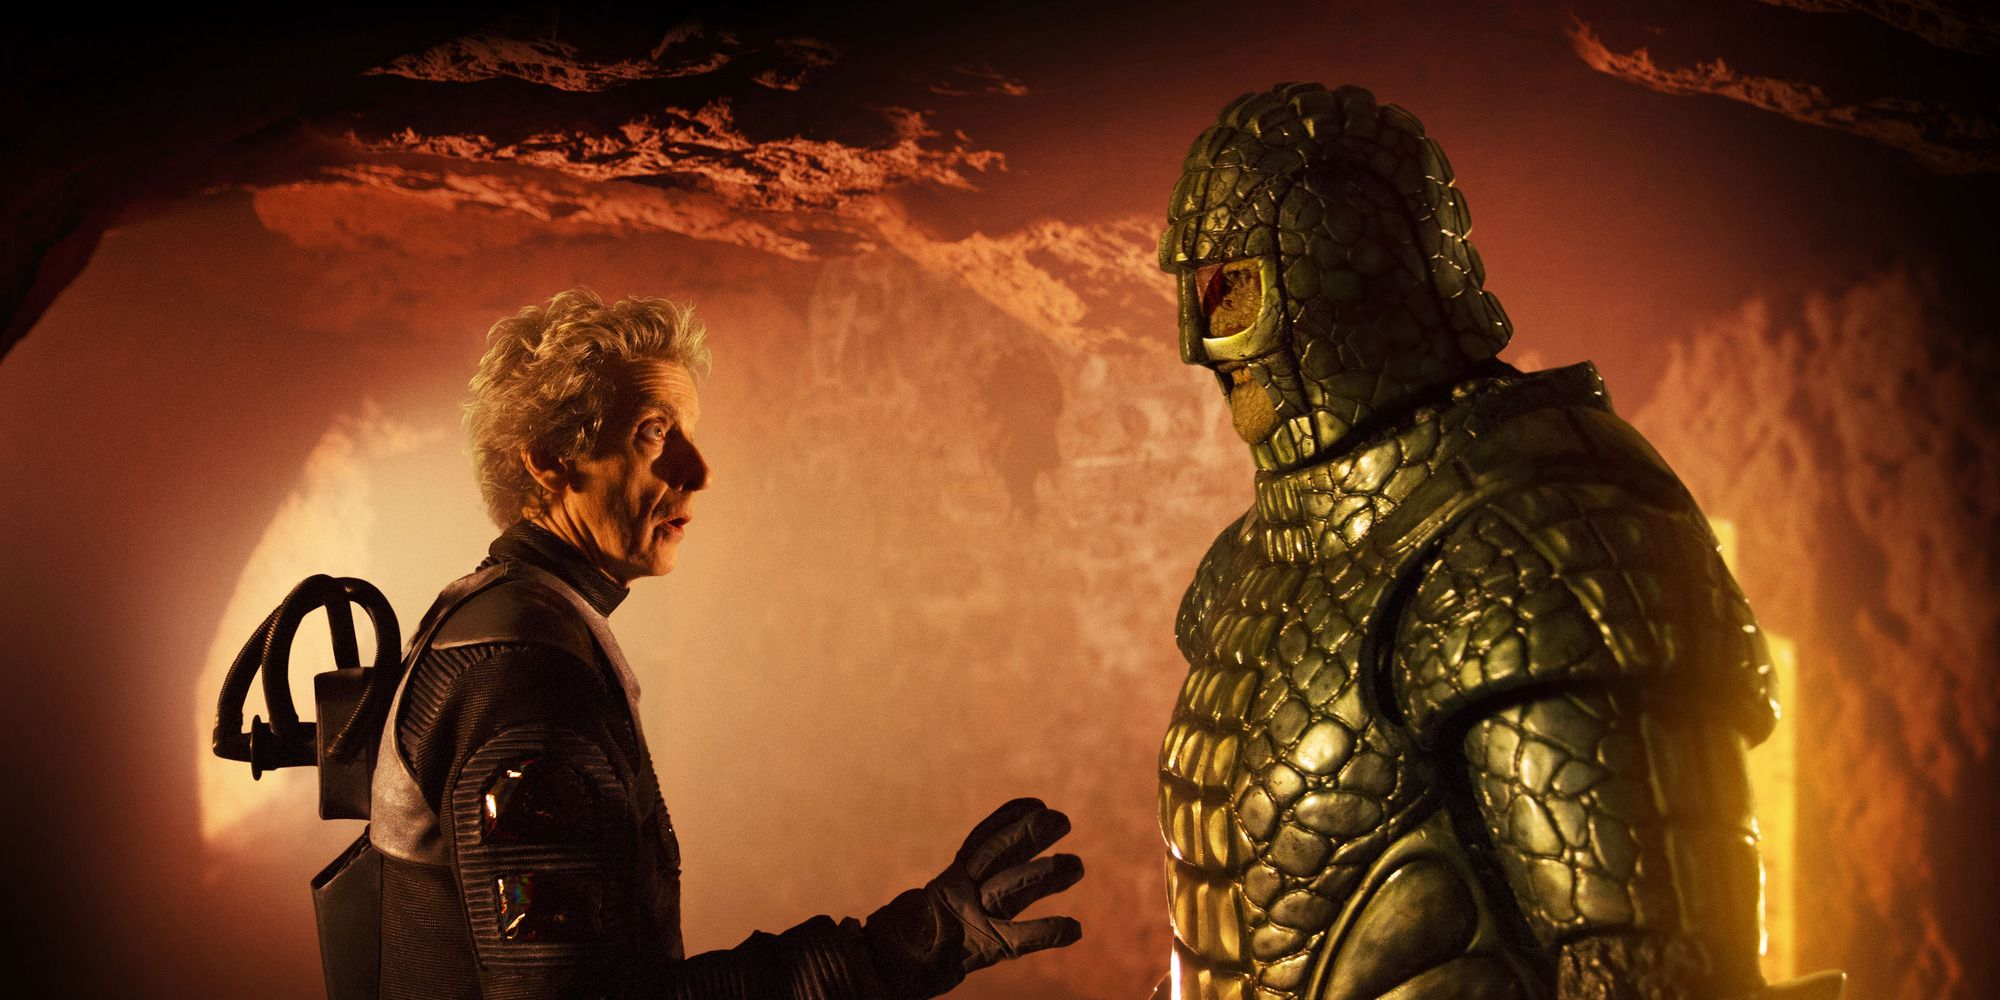 Doctor Who s10e09, 'The Empress of Mars'